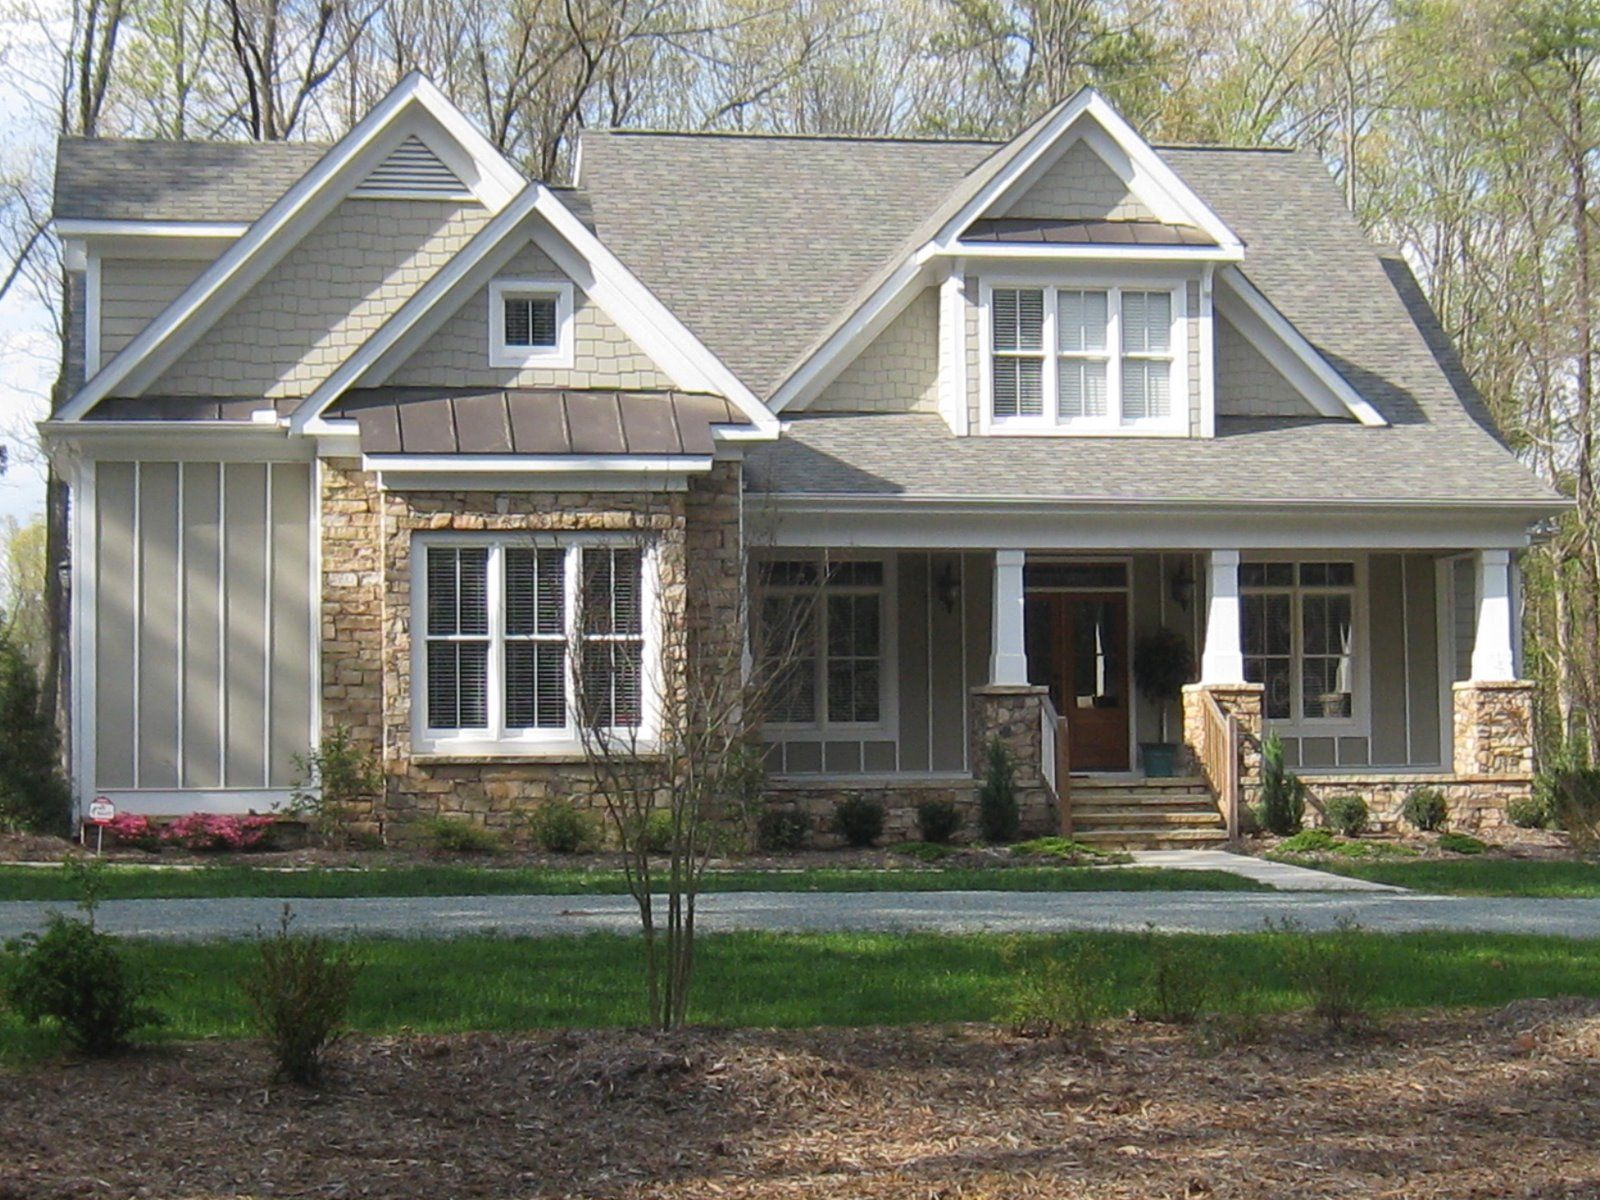 Attractive Rustic Roofing With Awesome Stones Wall Exposed Facade Craftsman Style Homes